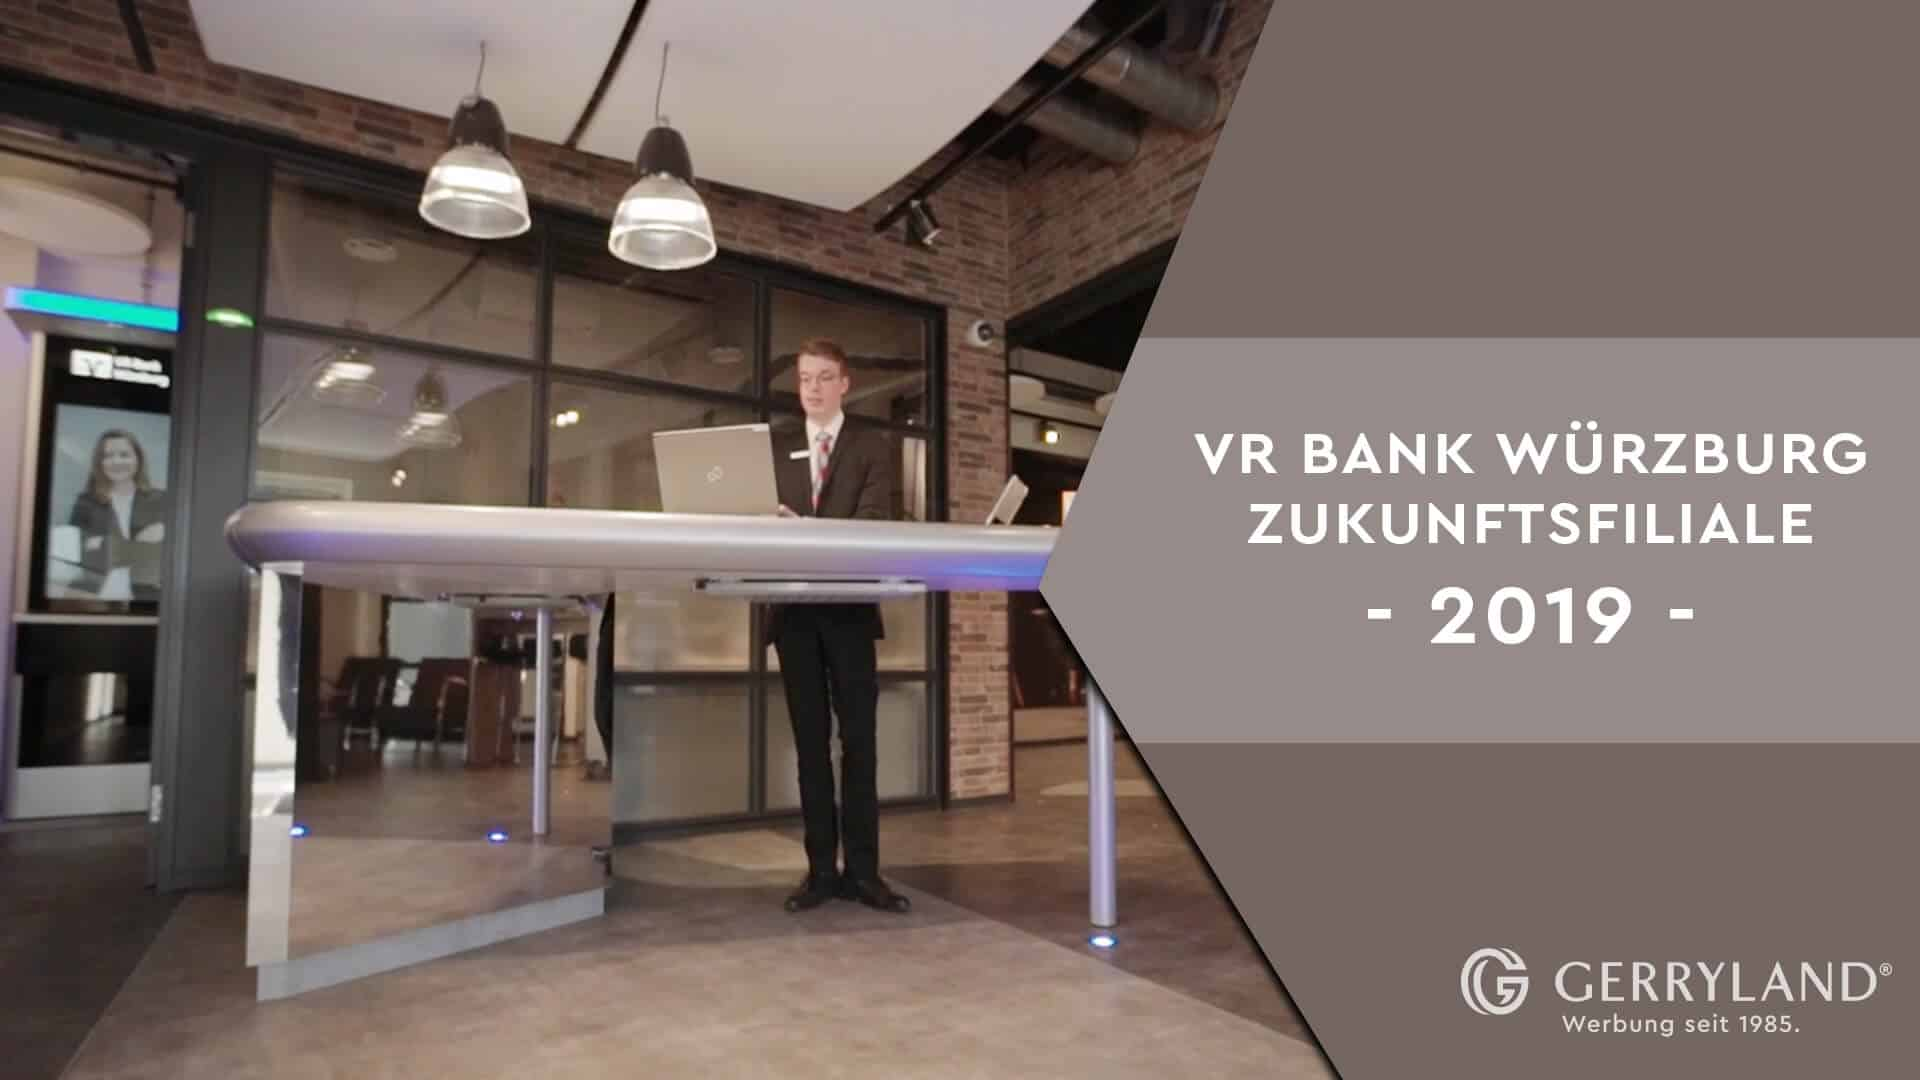 Gerryland-Youtube-Neukonzipierung-VR-Bank-Video-Zukunftsfiliale_Thumb